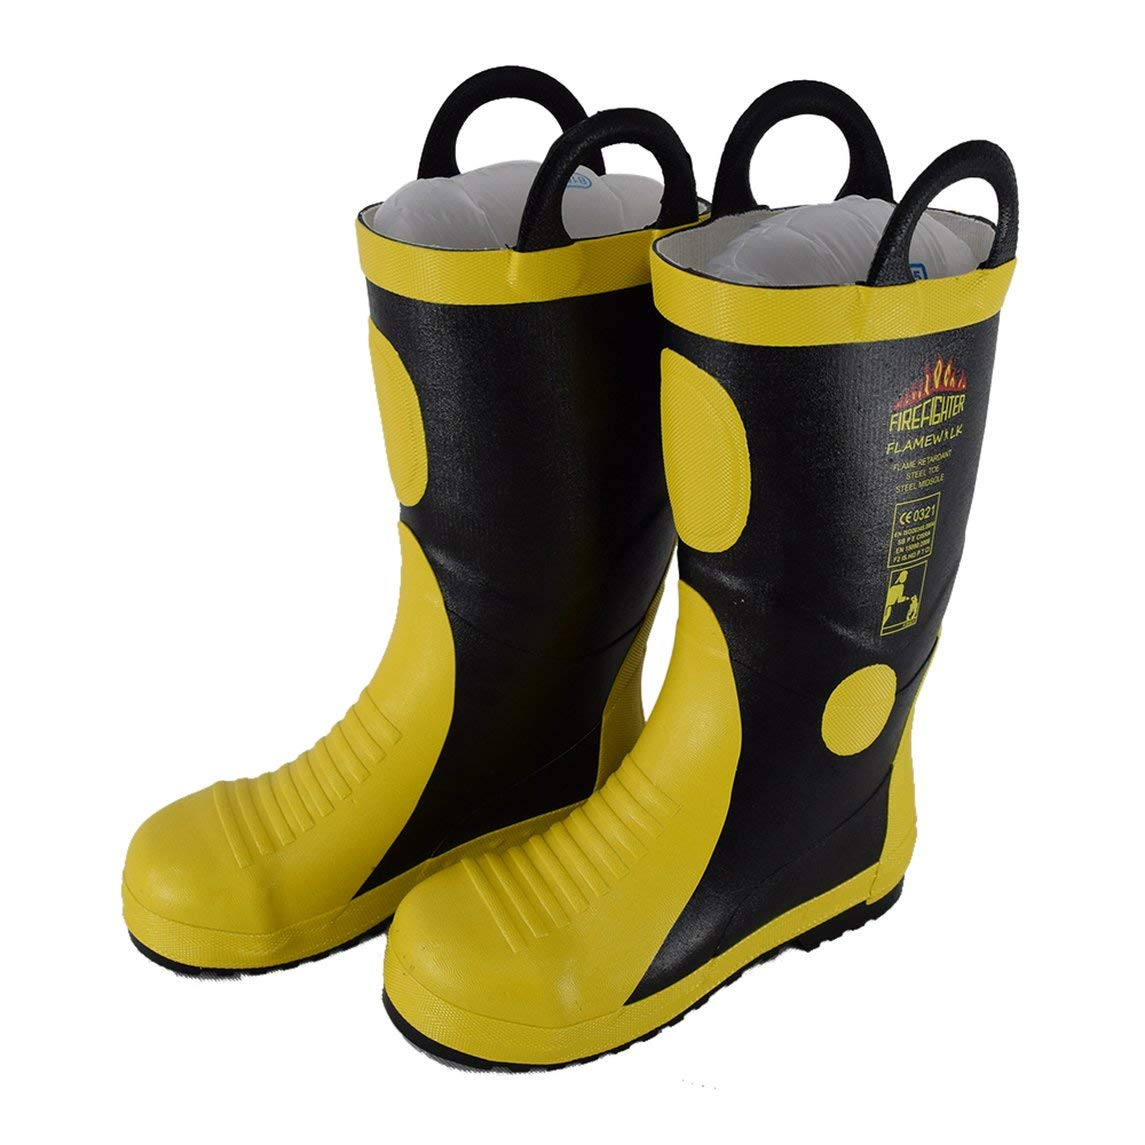 DA-085 High Temperature Resistant Rubber Fire Fighting Safety Boots Work Boots